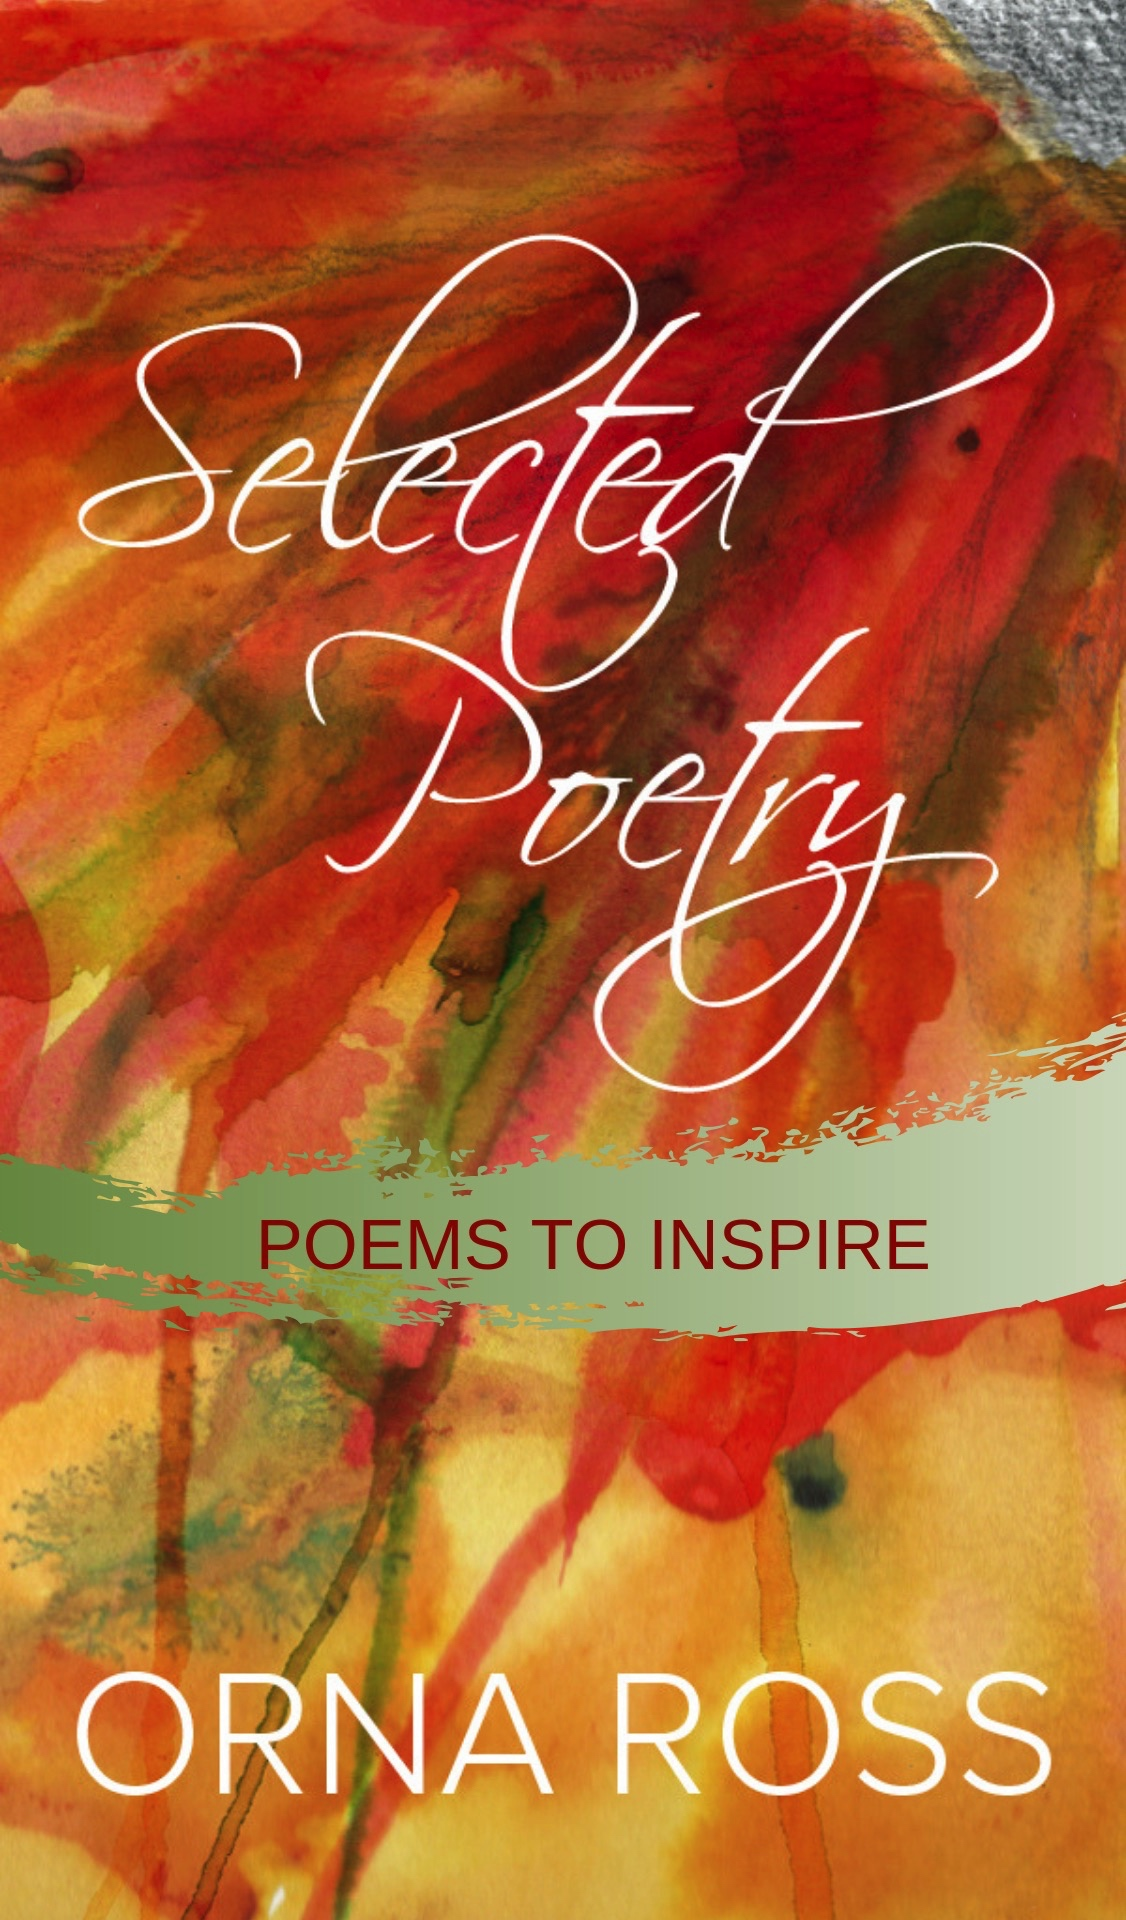 Selected Poetry: Poems to Inspire